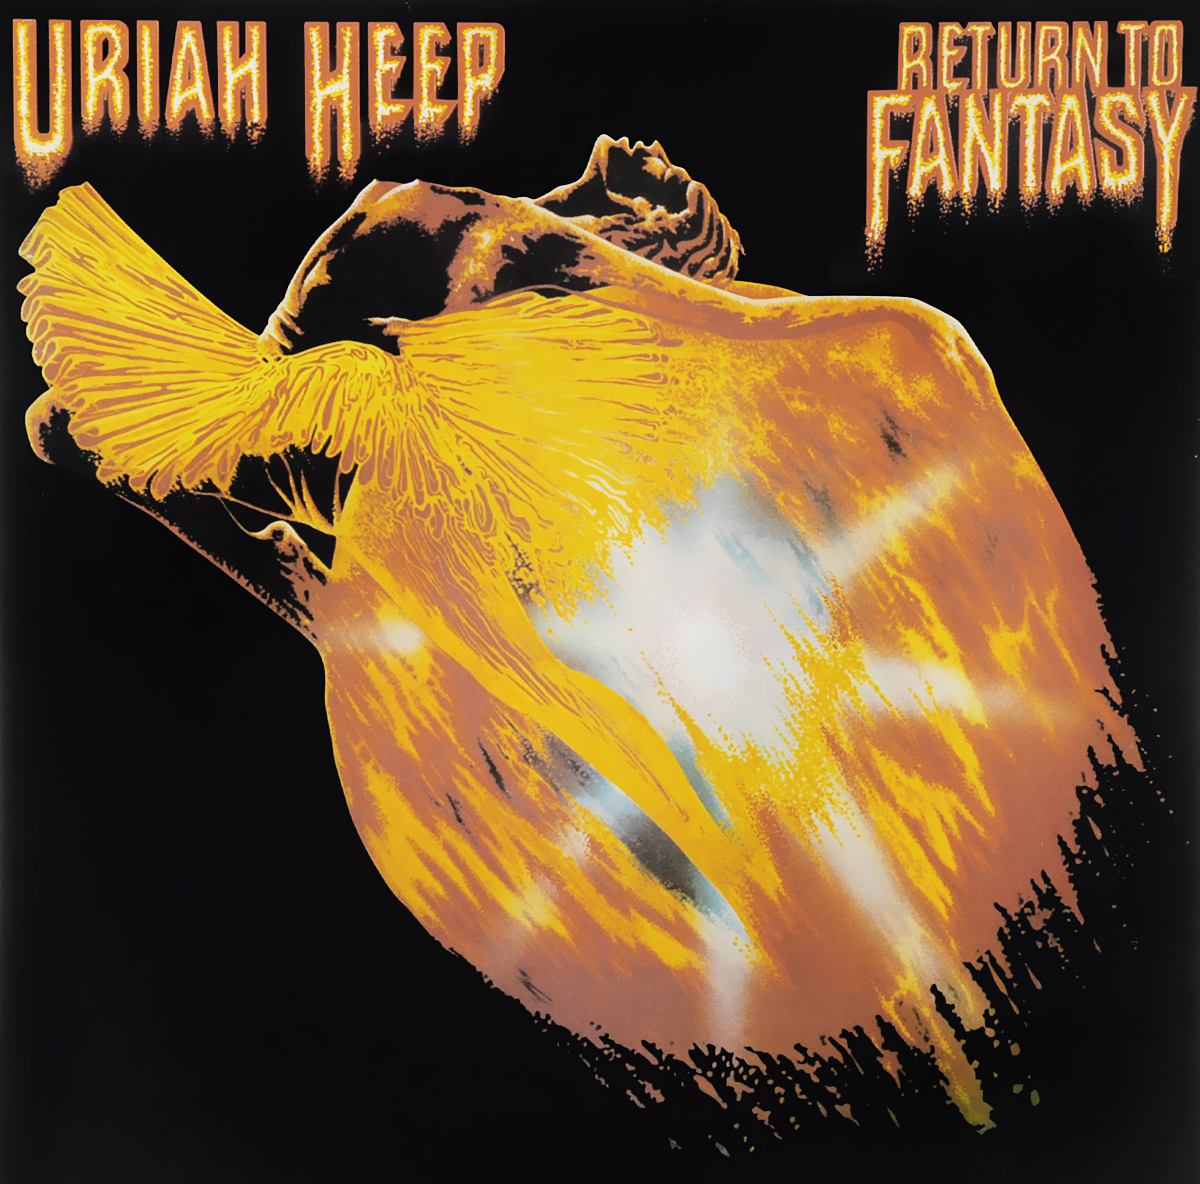 Uriah Heep Uriah Heep. Return To Fantasy (LP) fantasy inc prestige records